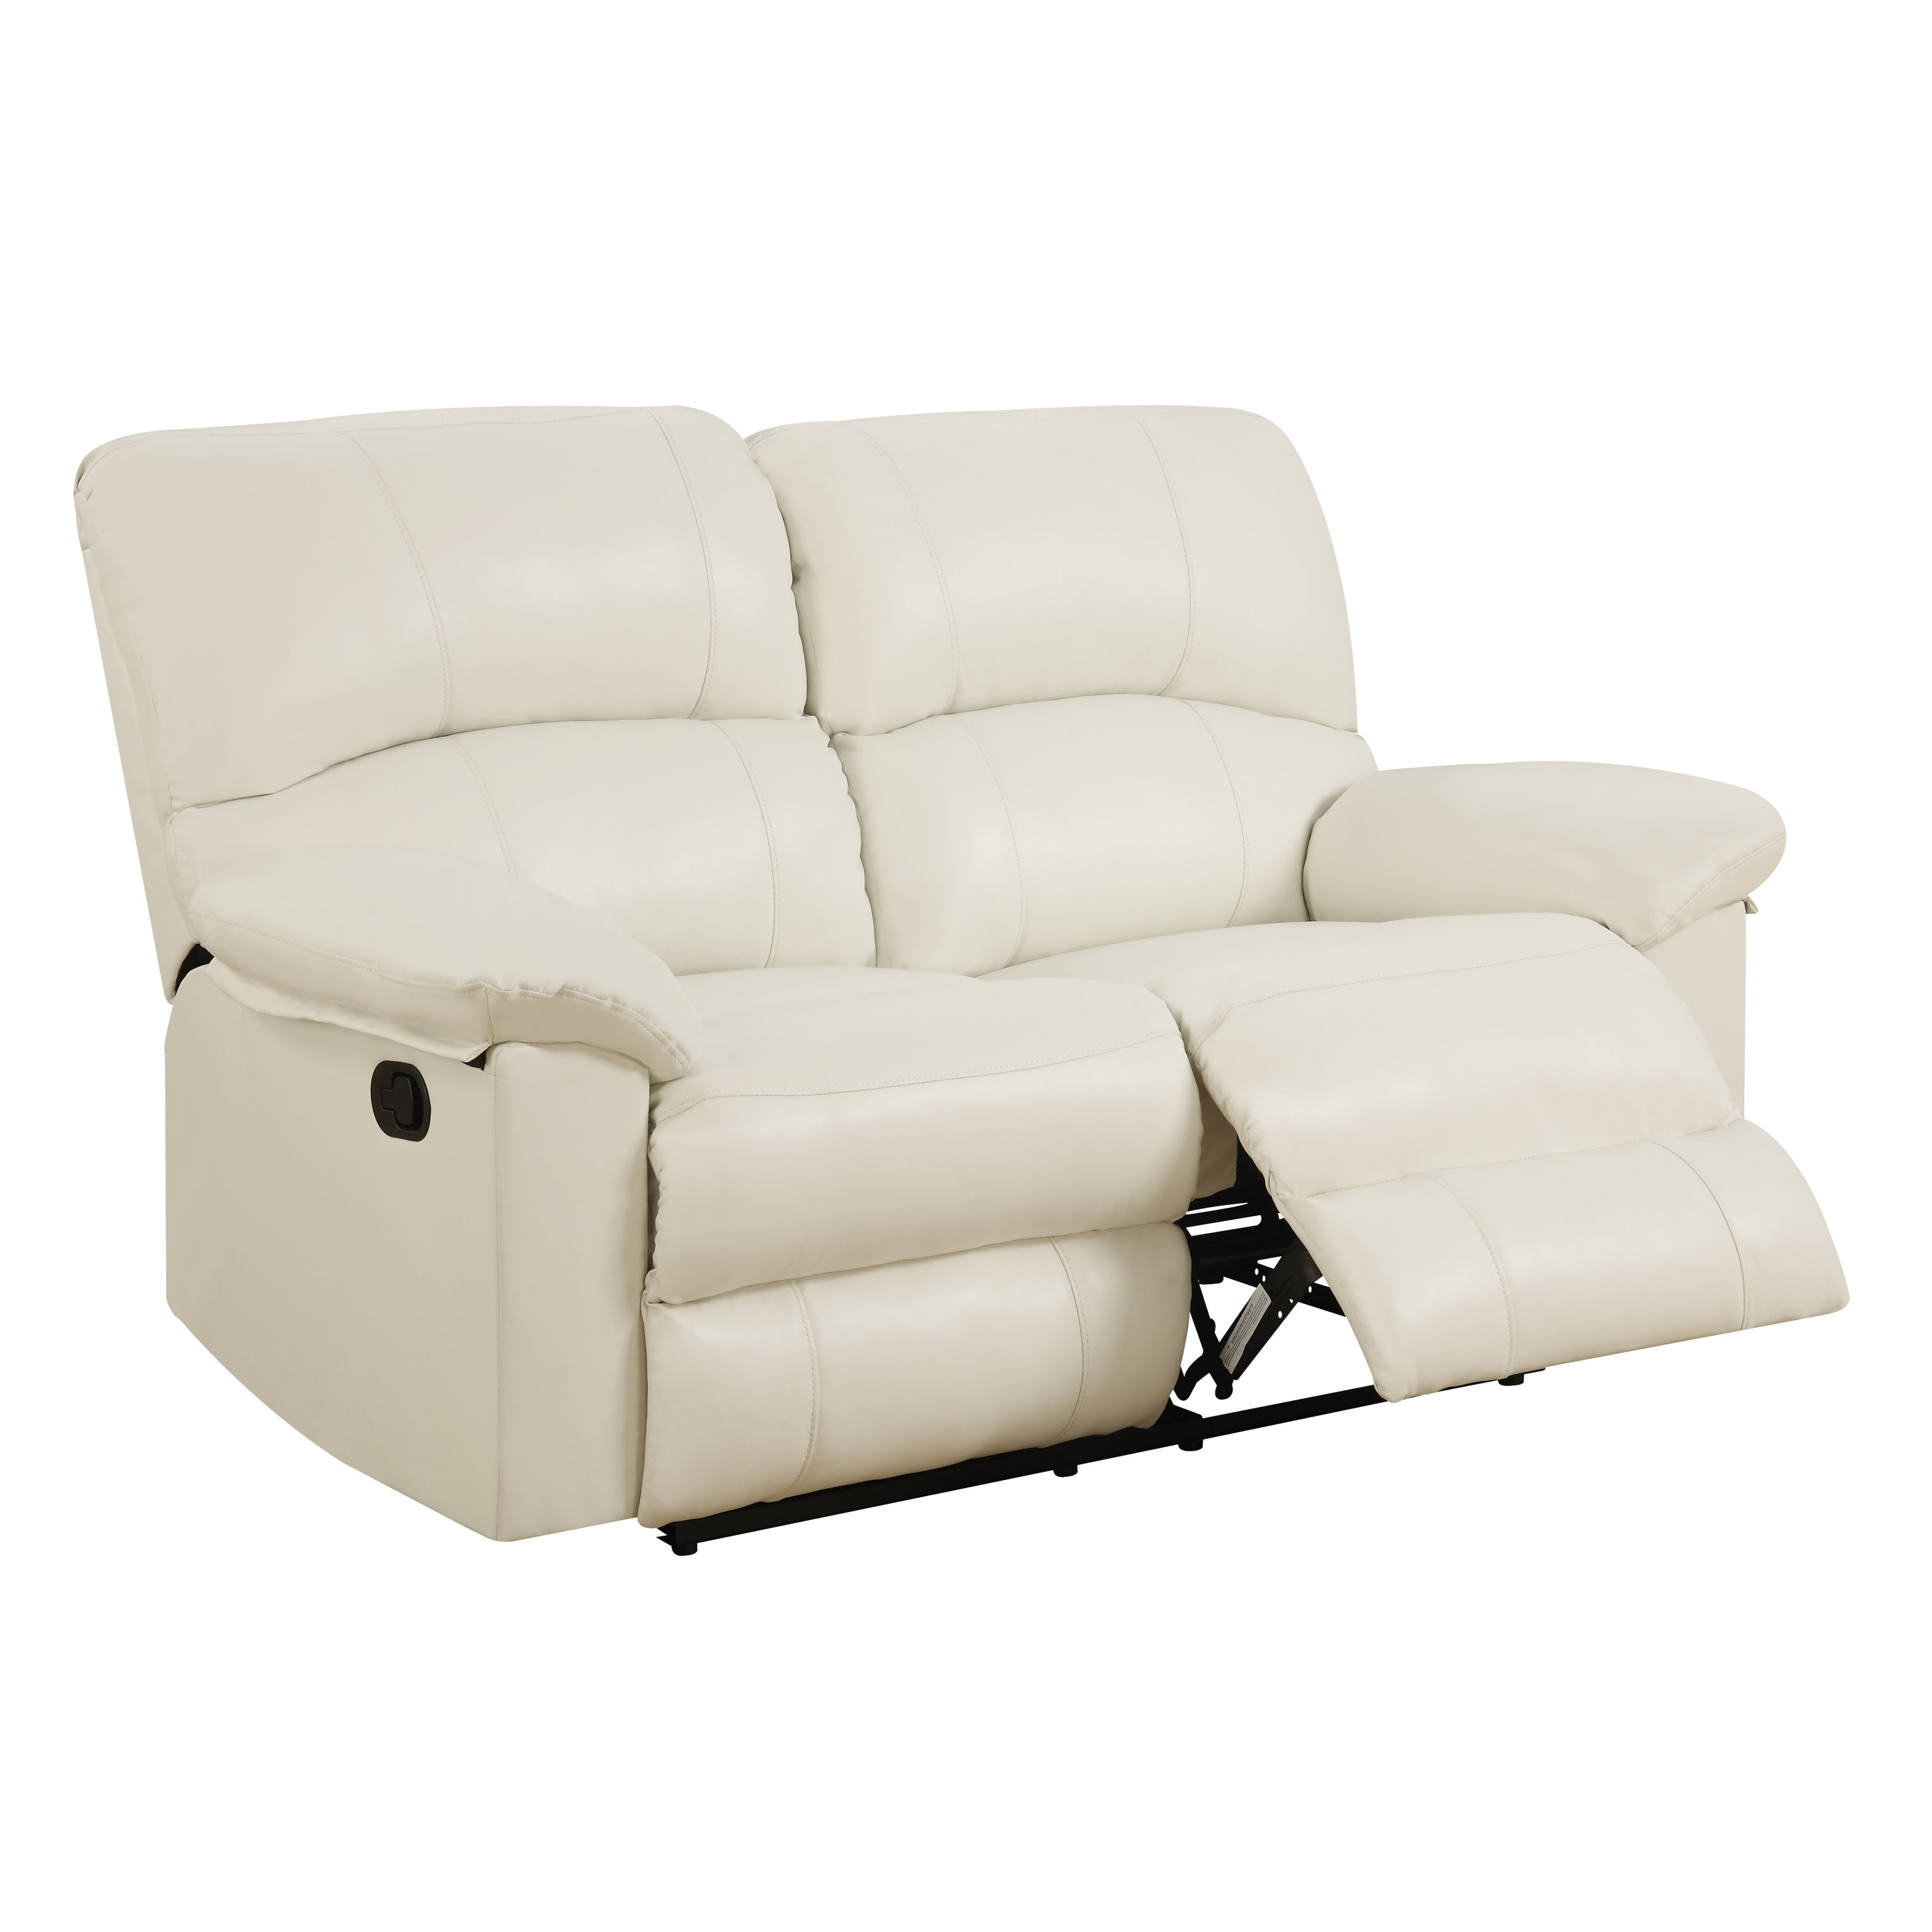 Picture of: White Reclining Loveseat Overstock 11441445